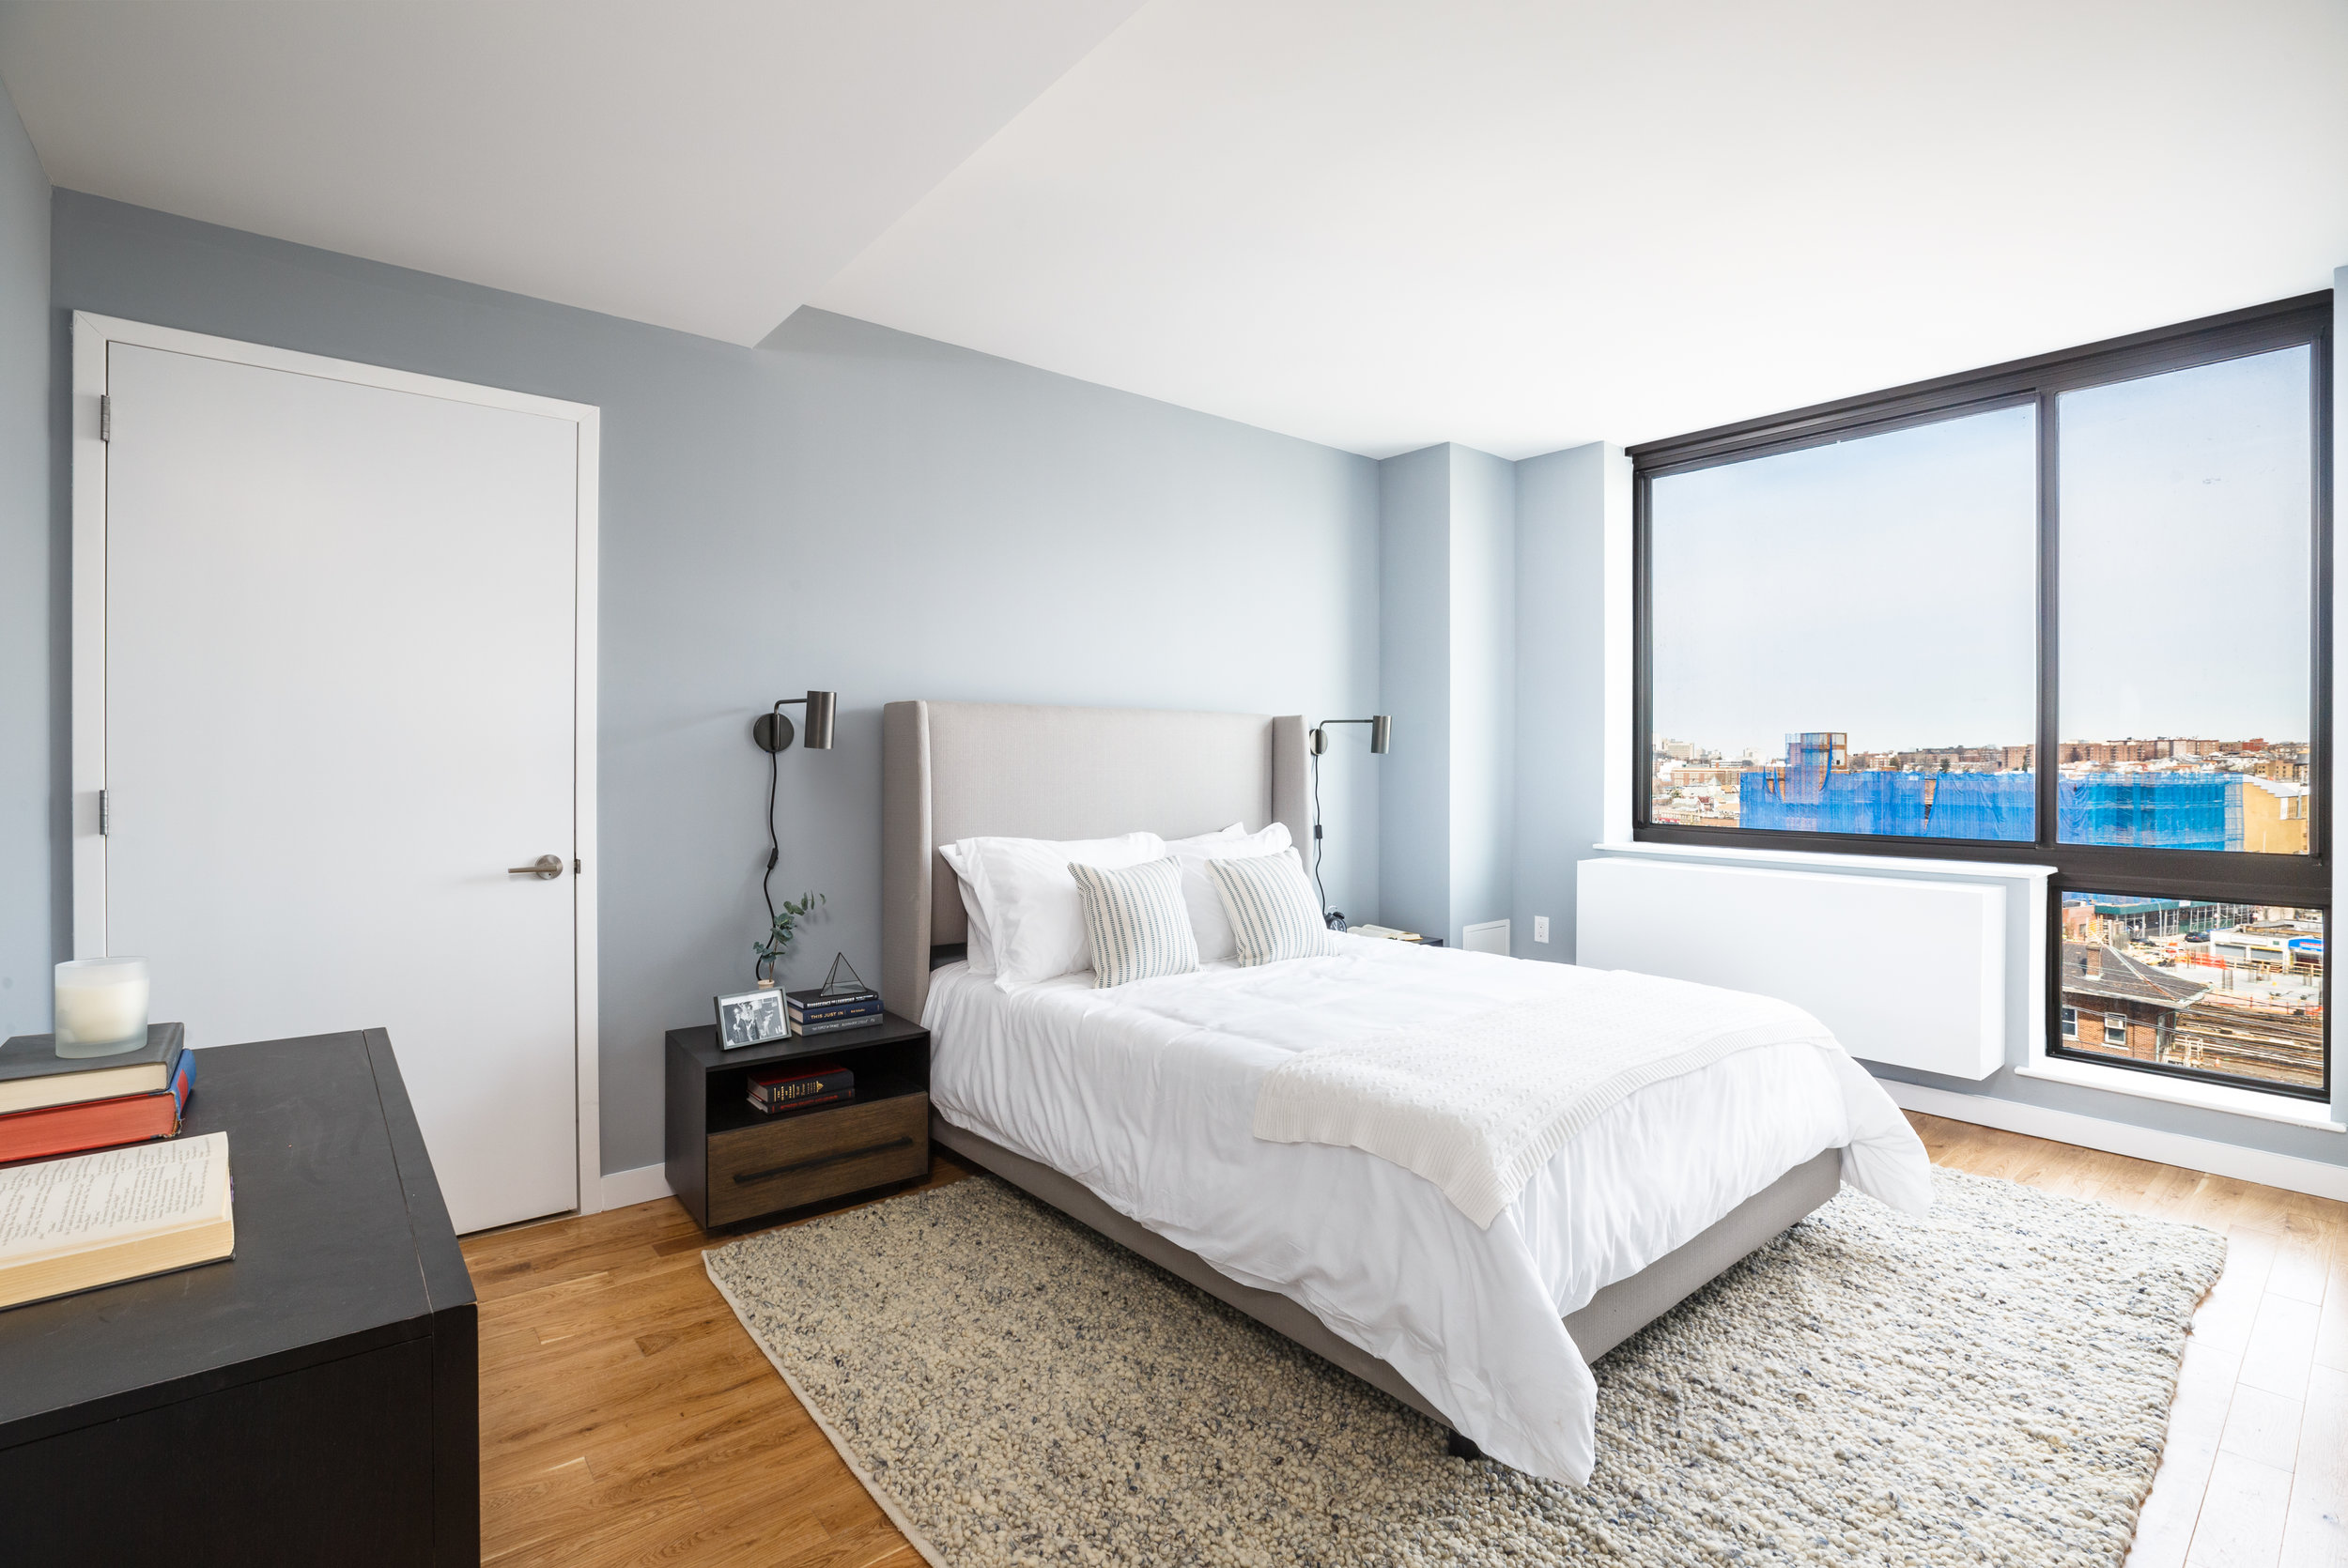 Alvista_-_2_Bedroom_Model_and_view_shots_of_Terrace_and_Recreation_Space_HighRes-2.jpg